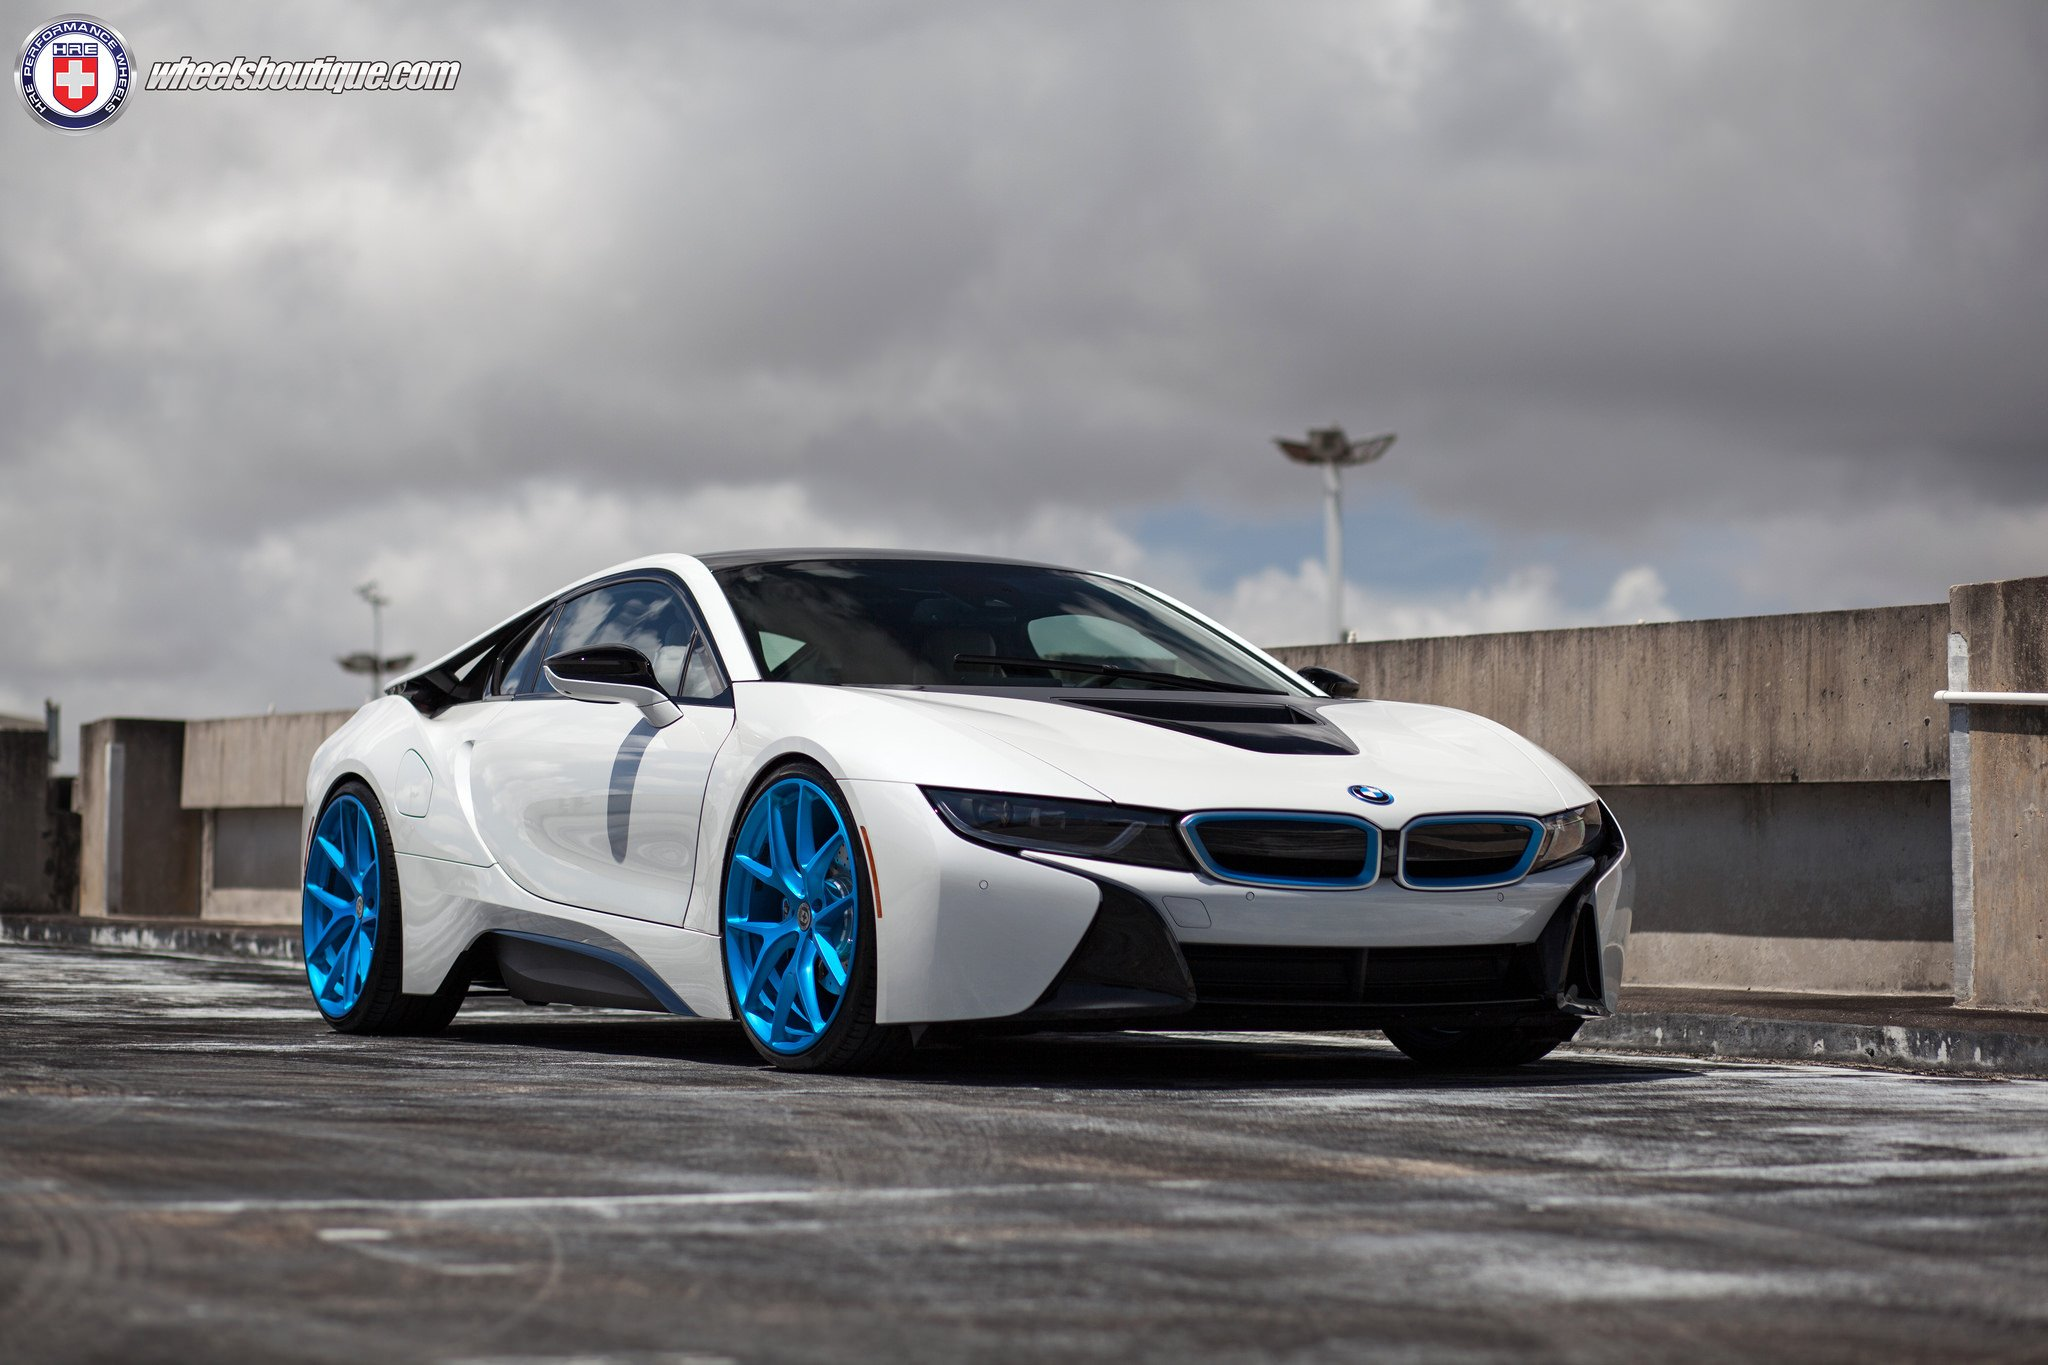 bmw i8 electric coupe cars tuning hre wheels wallpaper 2048x1365 686503 wallpaperup. Black Bedroom Furniture Sets. Home Design Ideas